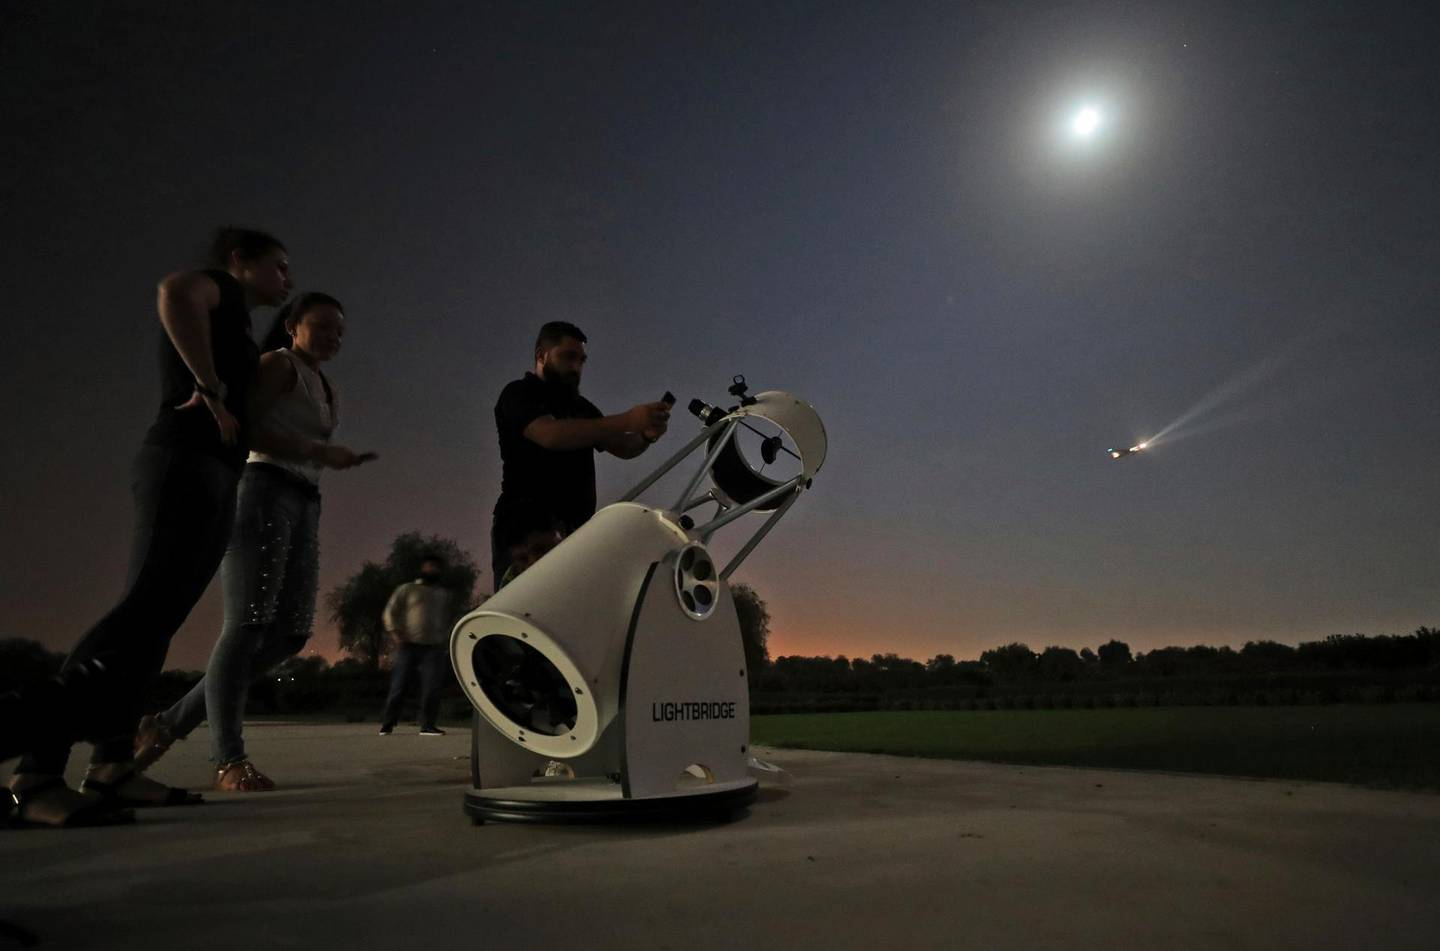 People stand to watch a partial lunar eclipse through a telescope at the Al Thuraya Astronomy Center in Dubai, United Arab Emirates, Tuesday, July 16, 2019. (AP Photo/Kamran Jebreili)